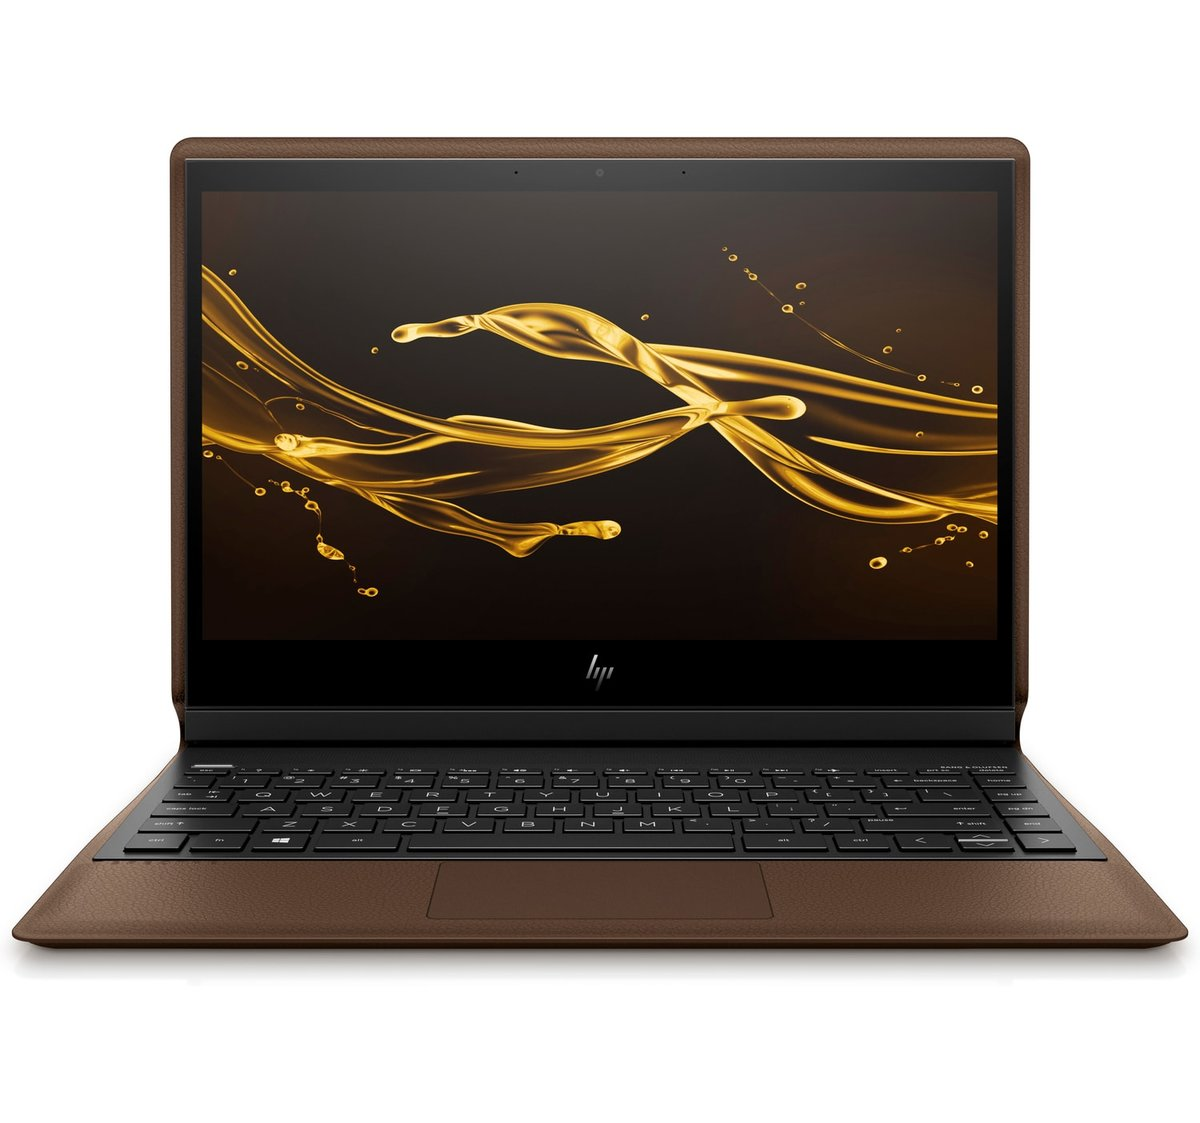 HP SPECTRE FOLIO 13-AK0000NS - I7/8GB/256GB SSD PIEL MARRÓN